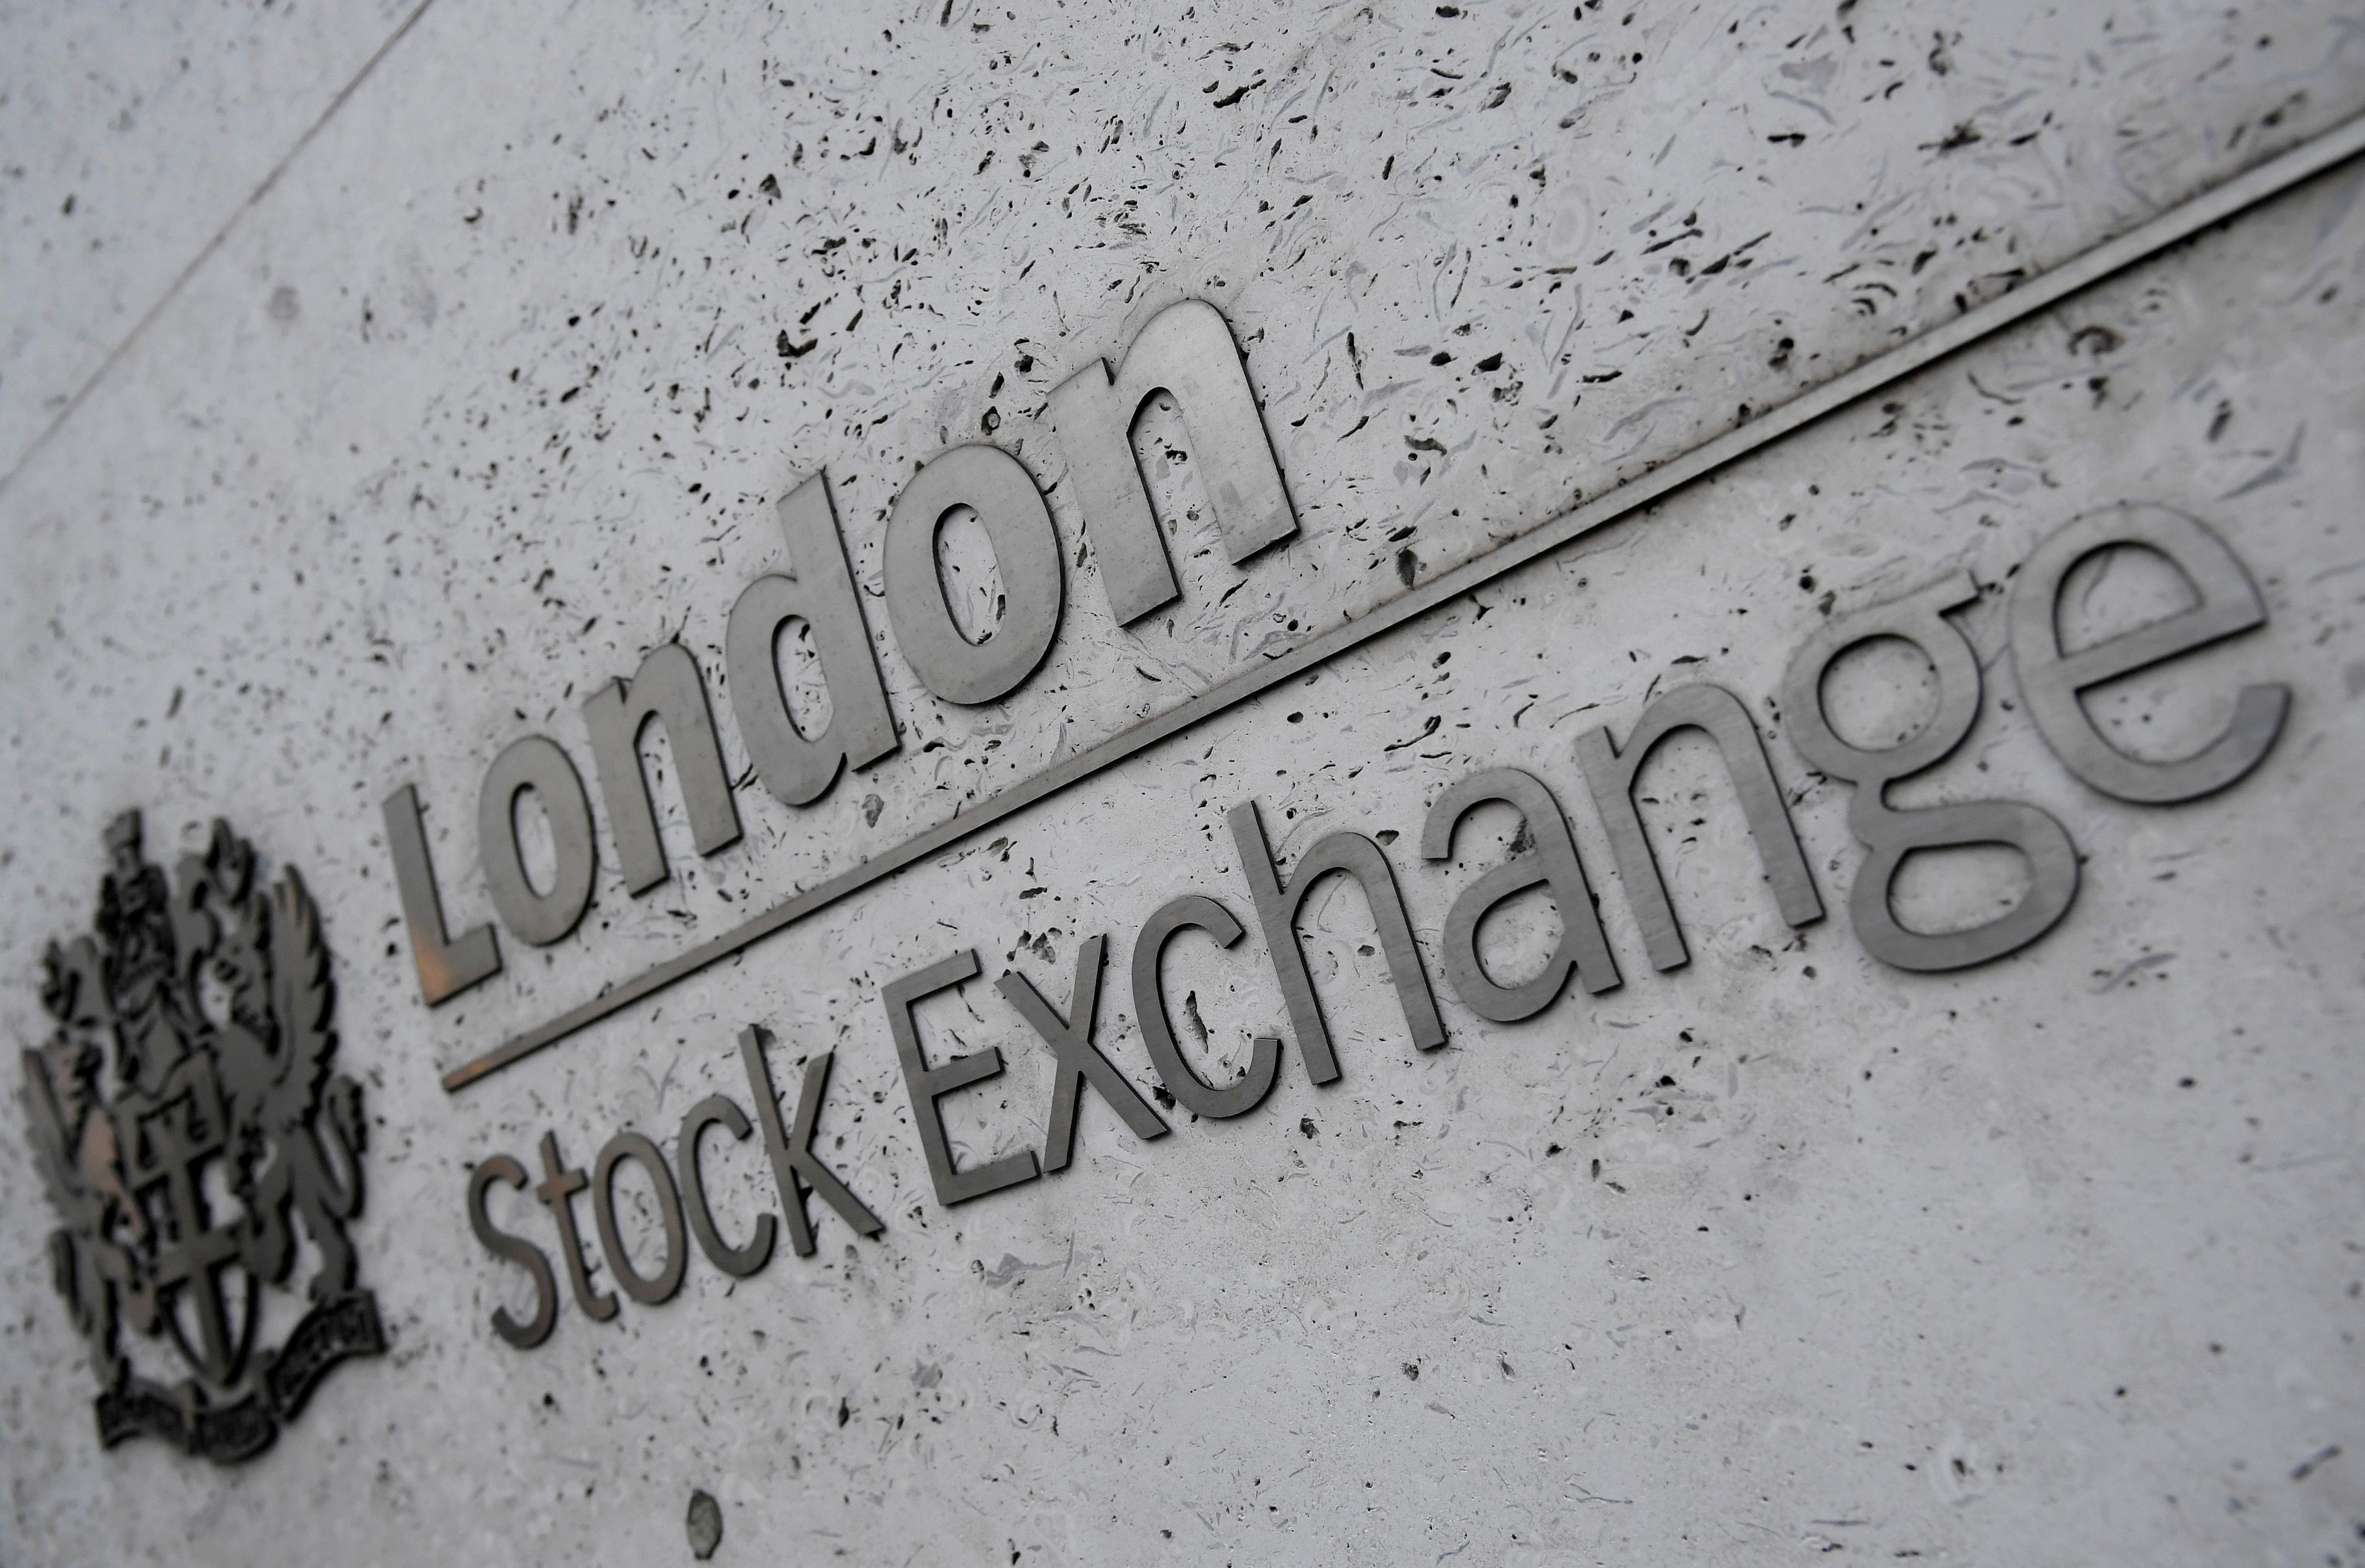 Stocks edge higher on Brexit hopes, trade optimism fades